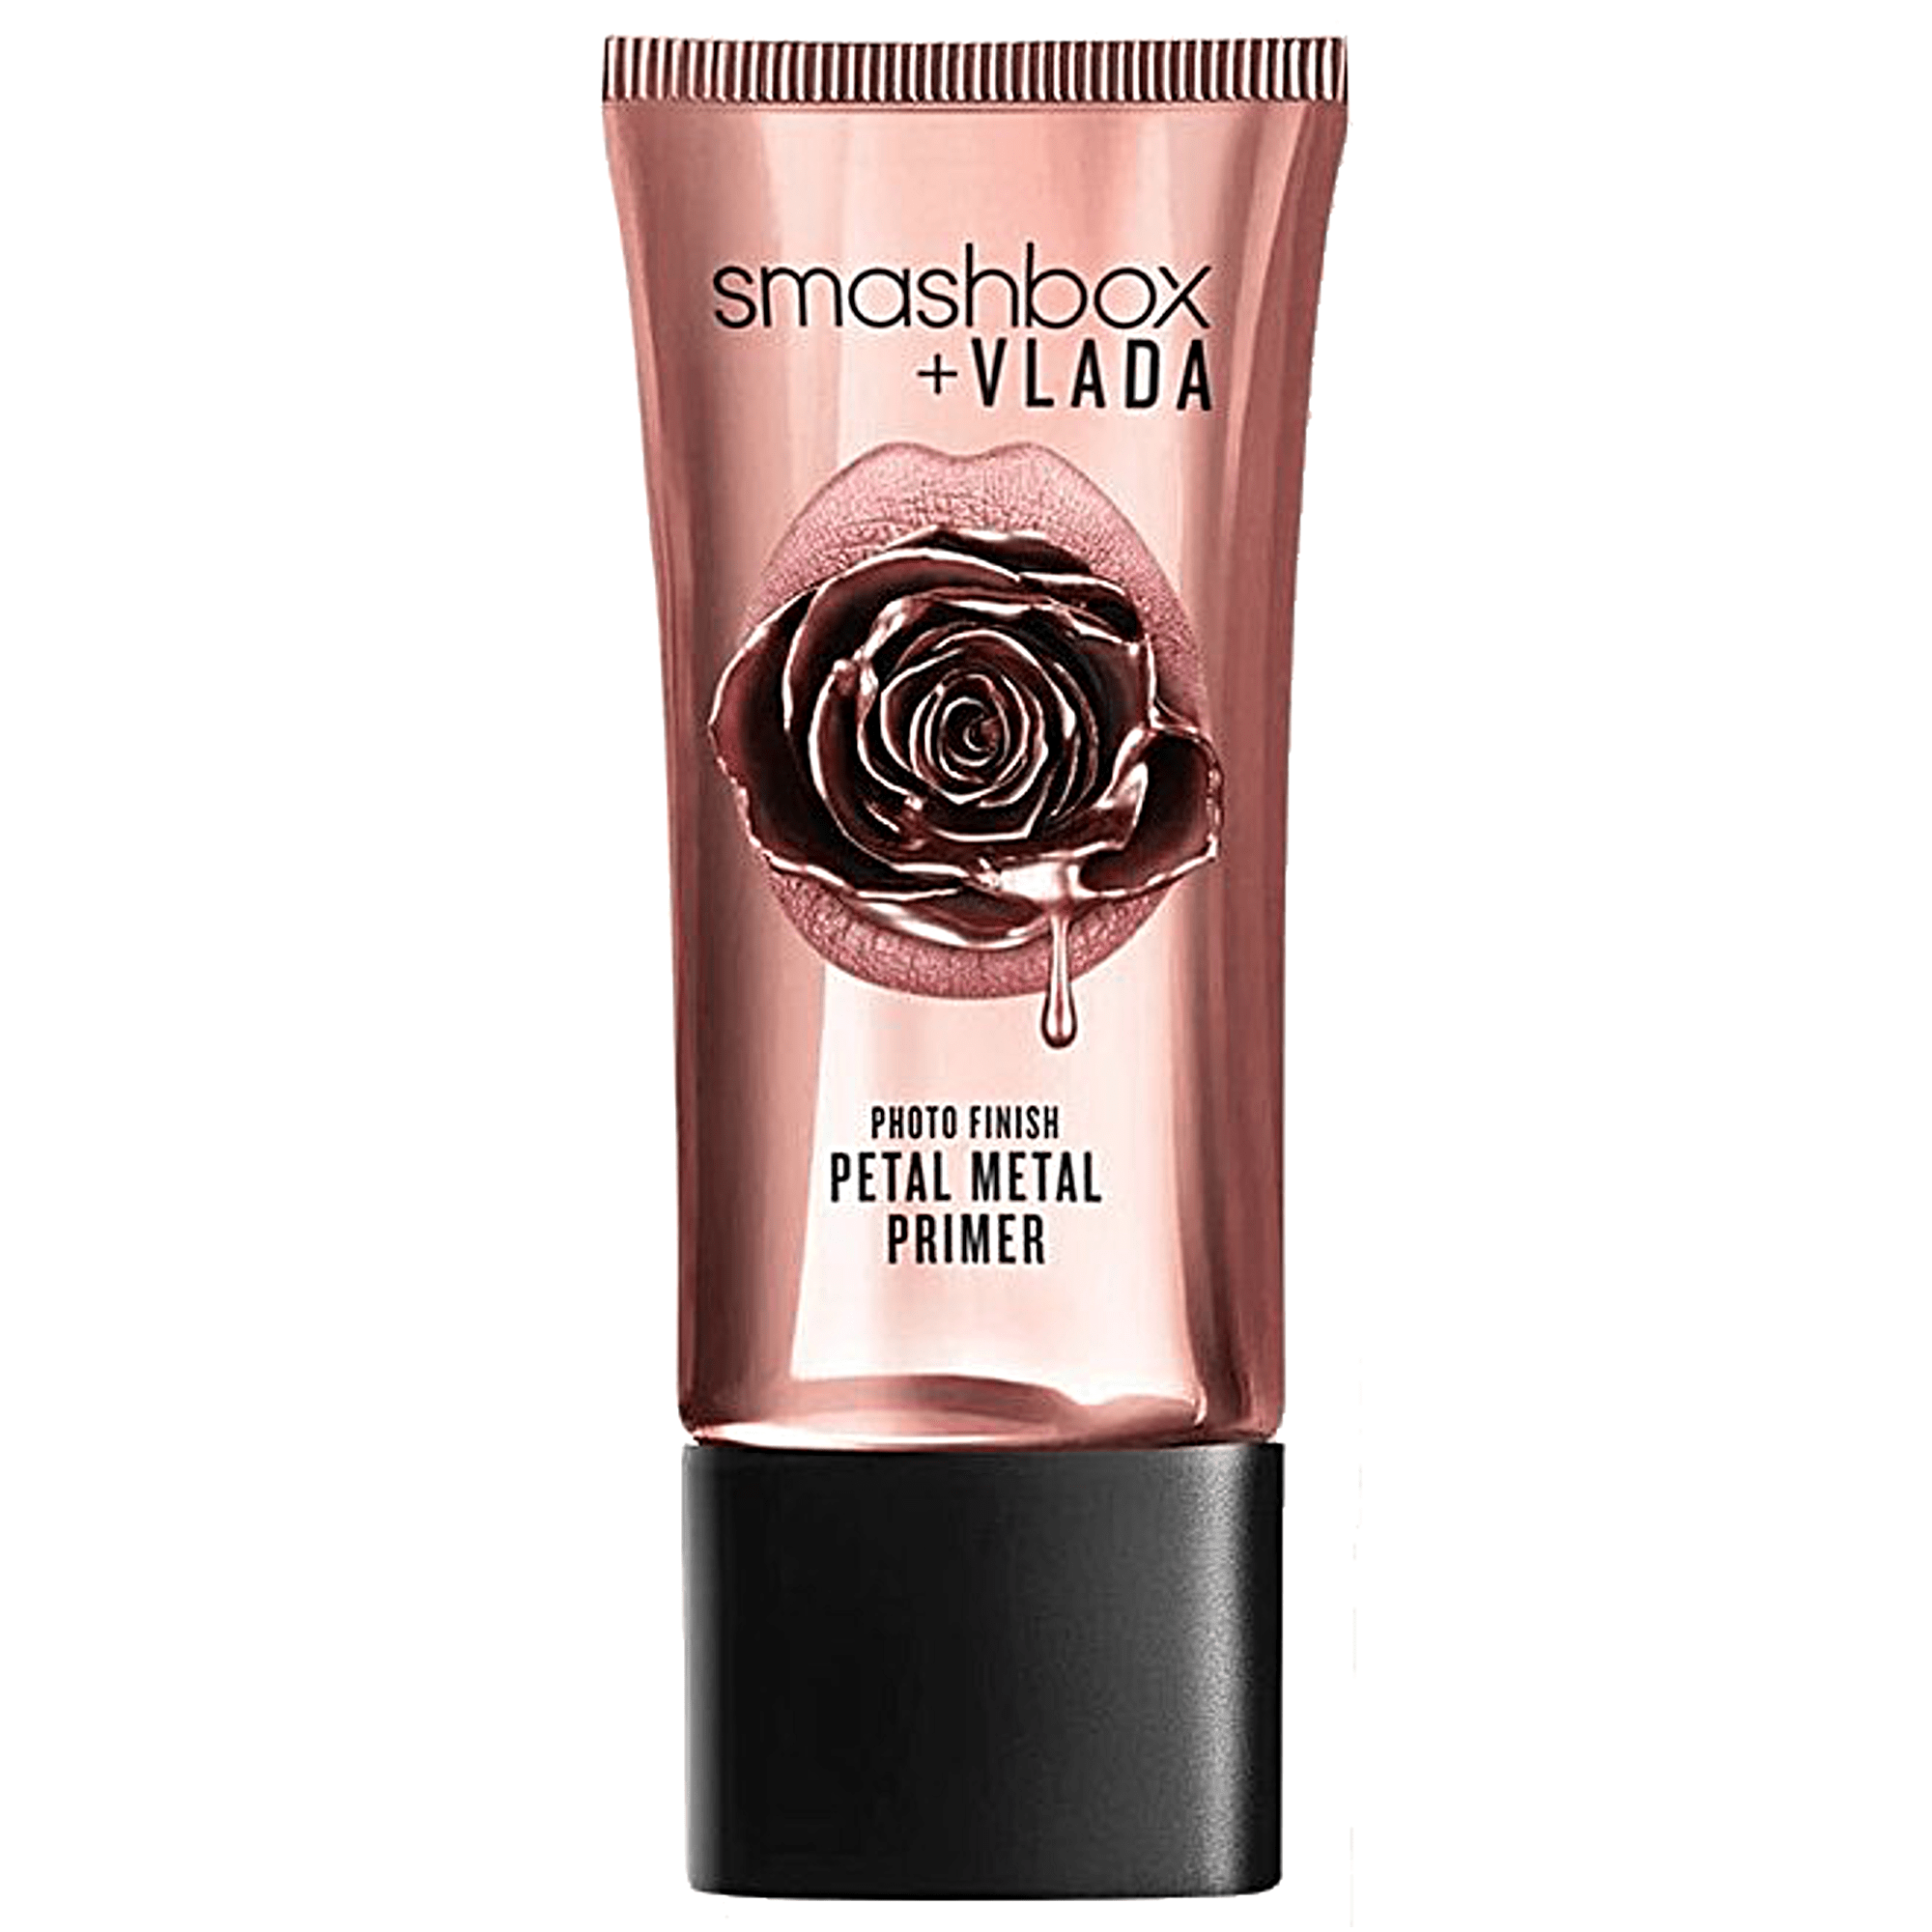 Smashbox x Vlada Petal Metal Photo Finish Primer